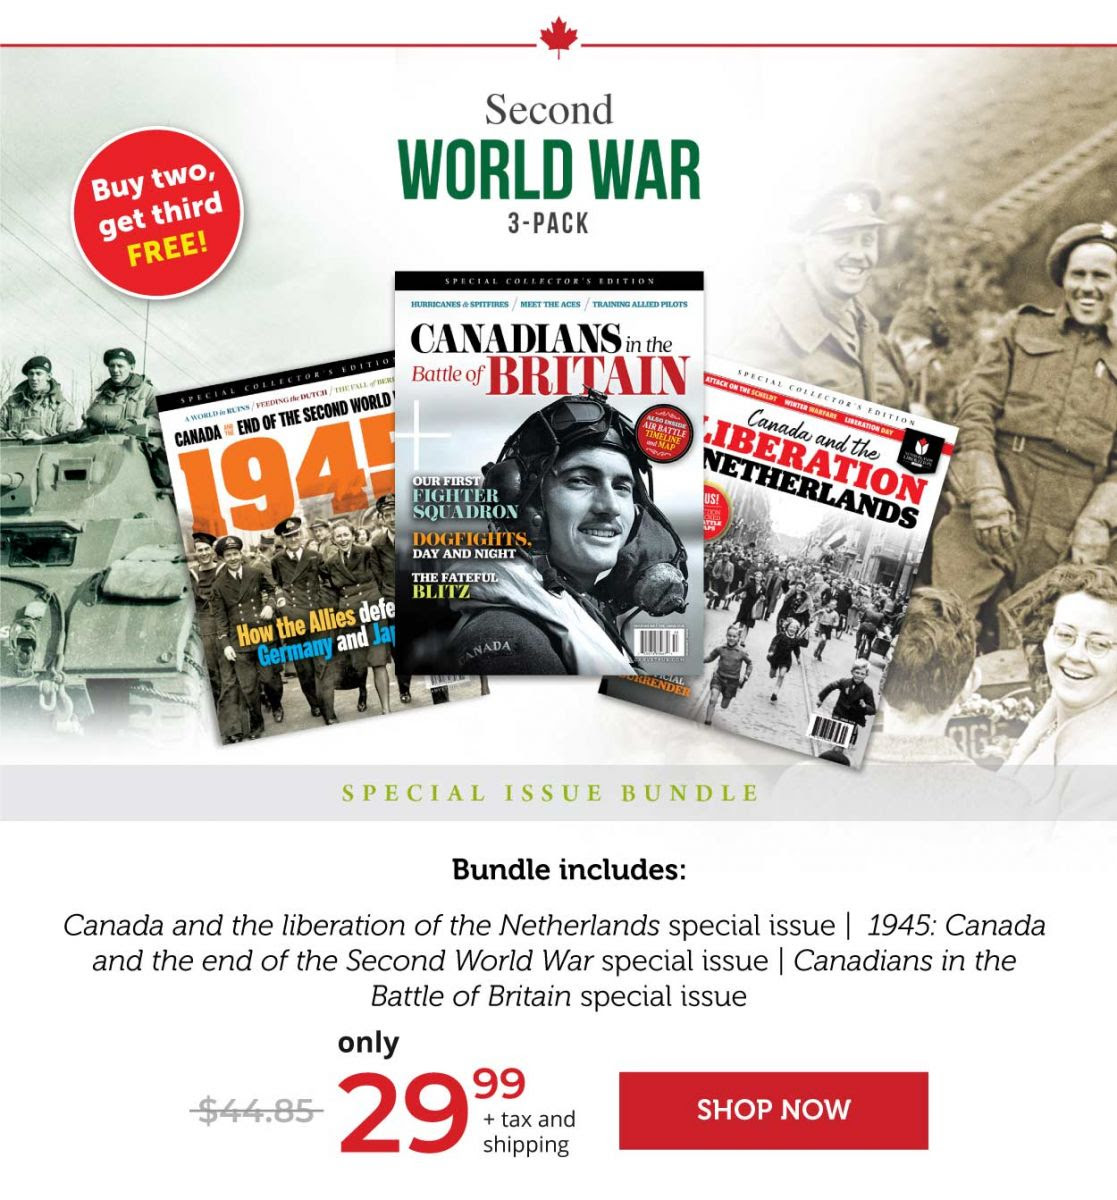 Canada's Ultimate Story - Second World War 3-Pack